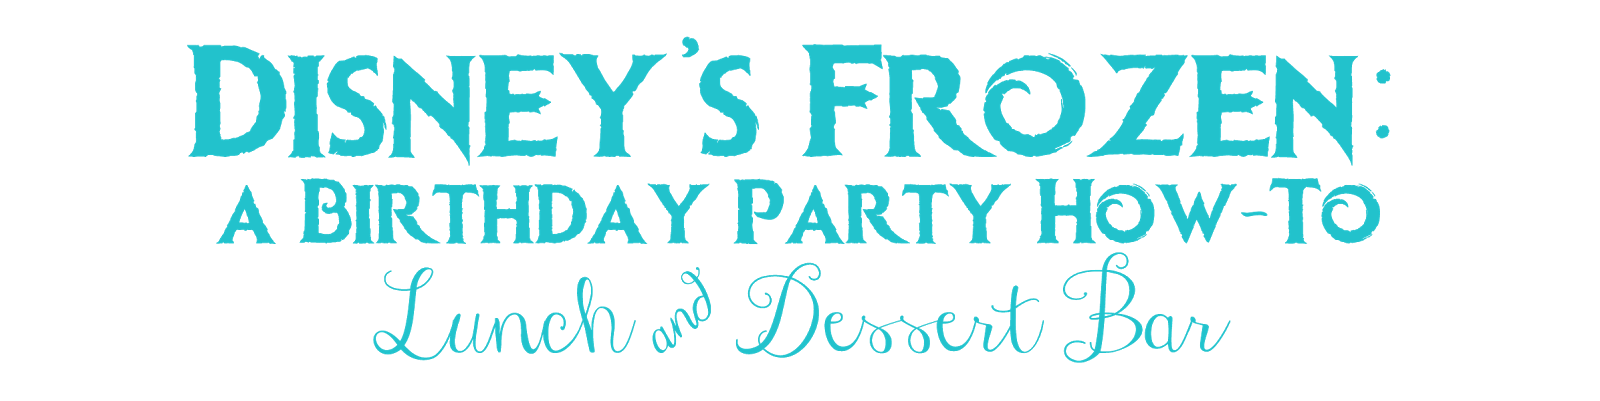 Disney's Frozen:  A Birthday Party How-To -- Lunch & Dessert Bar